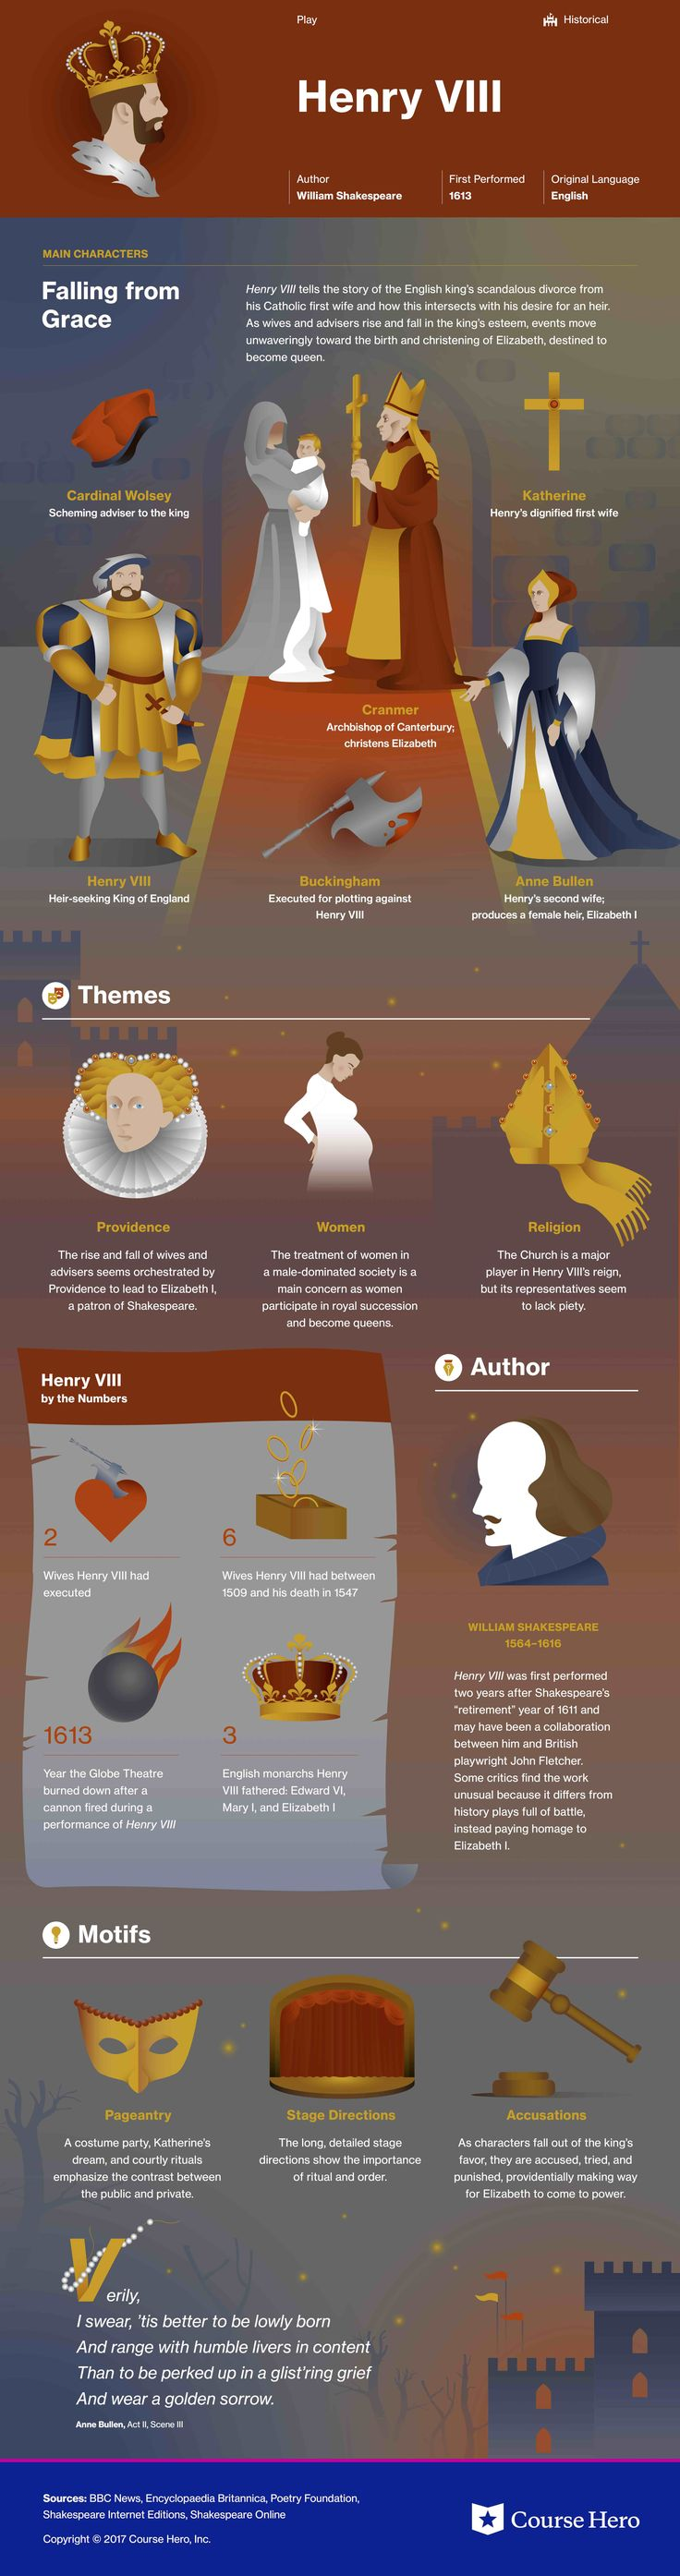 othello aristotelian tragedy essay Open document below is an essay on aristotelian tragedy from anti essays, your source for research papers, essays, and term paper examples.